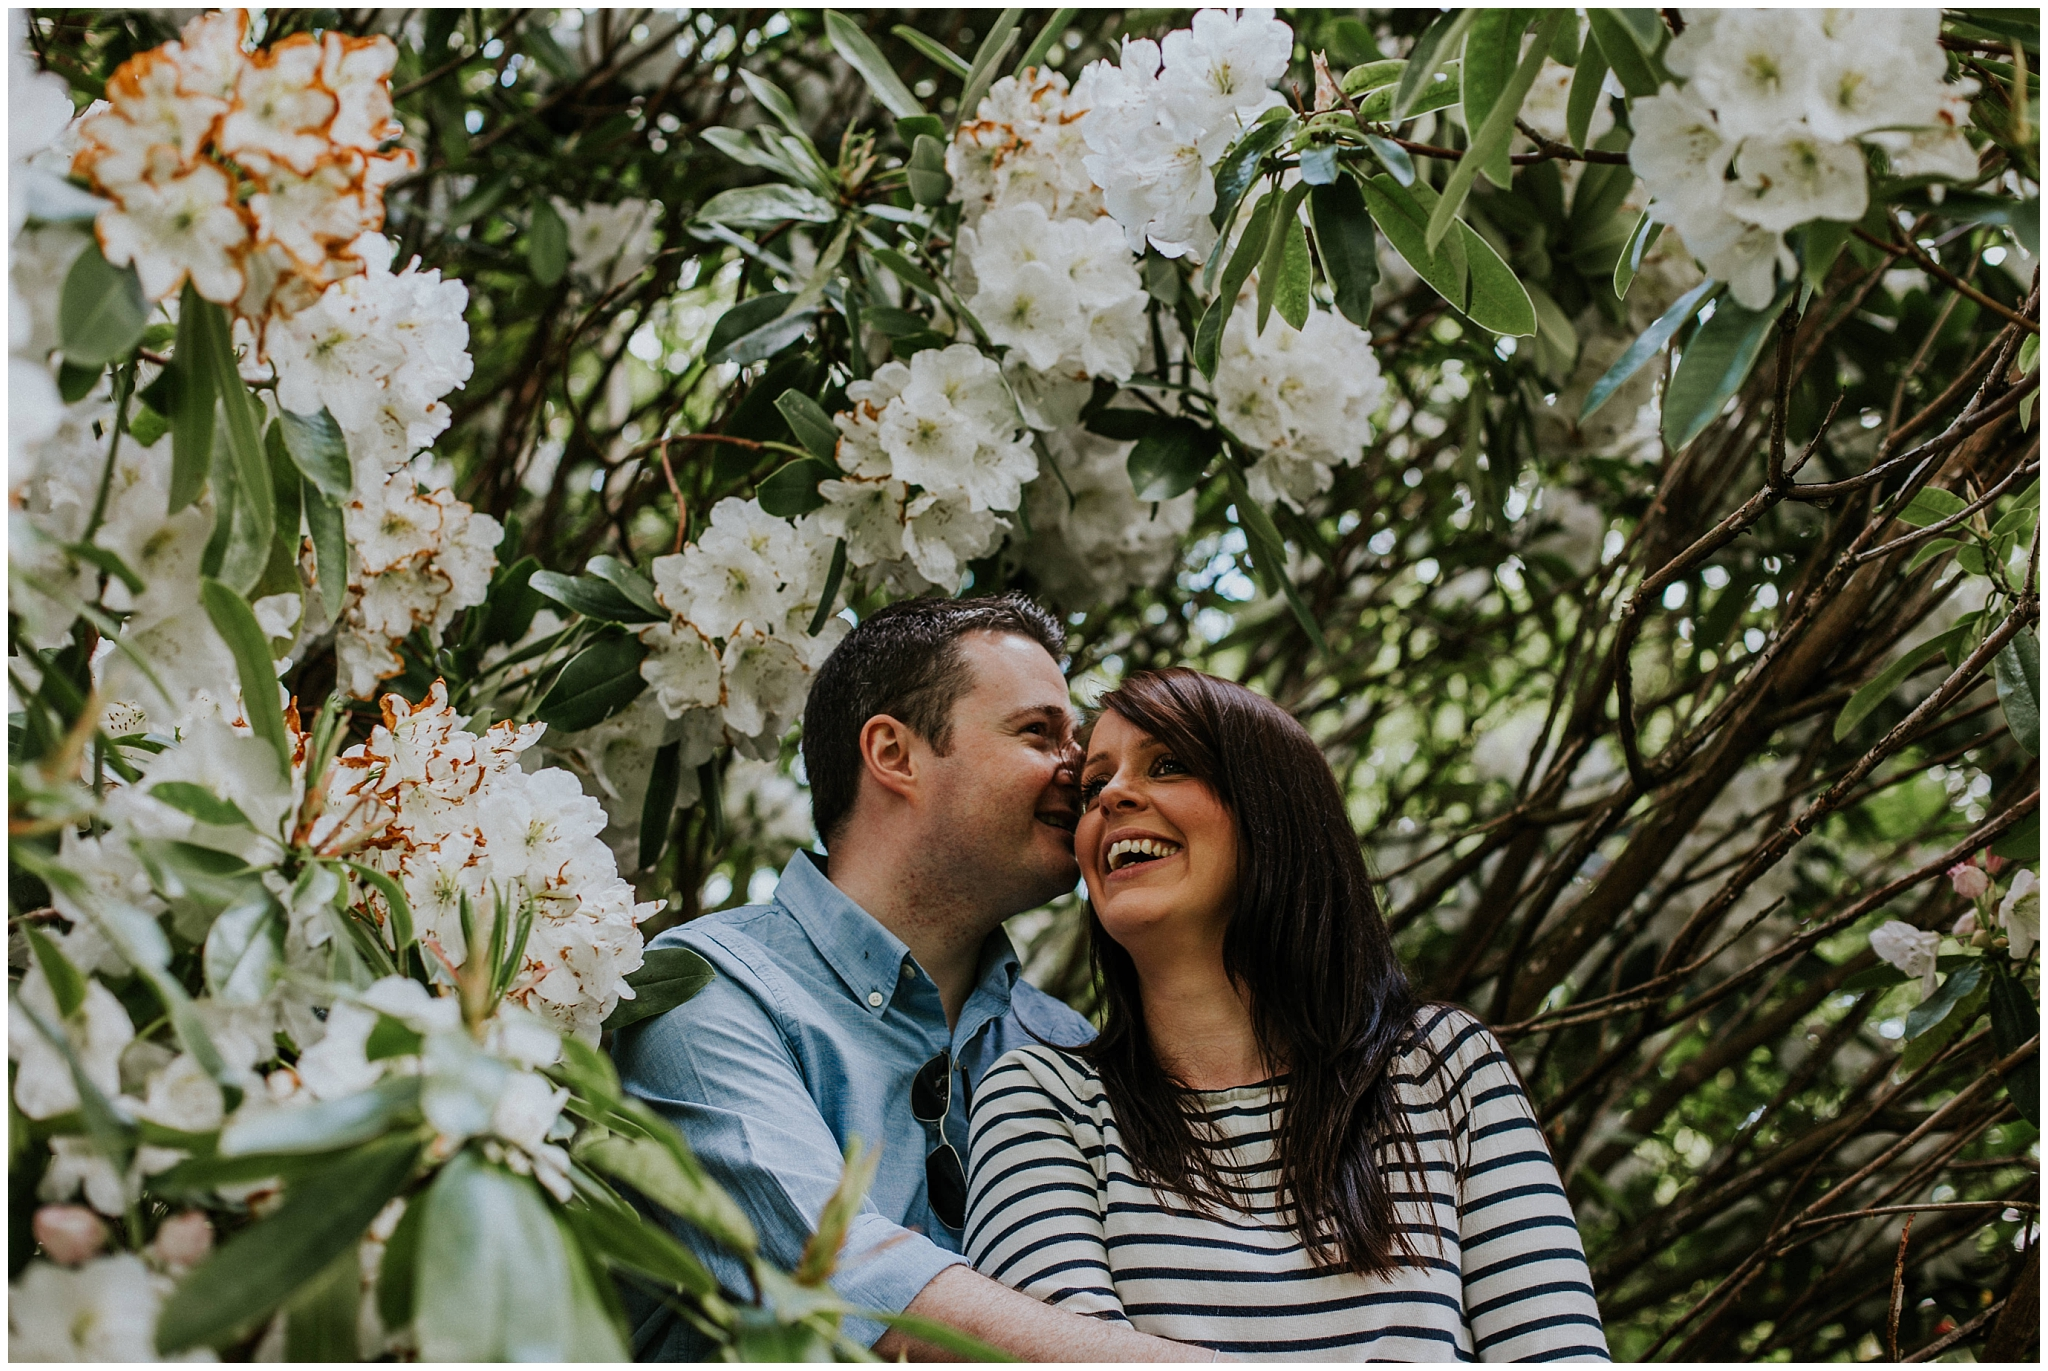 Engagement Photography Glasgow Botanic Gardens